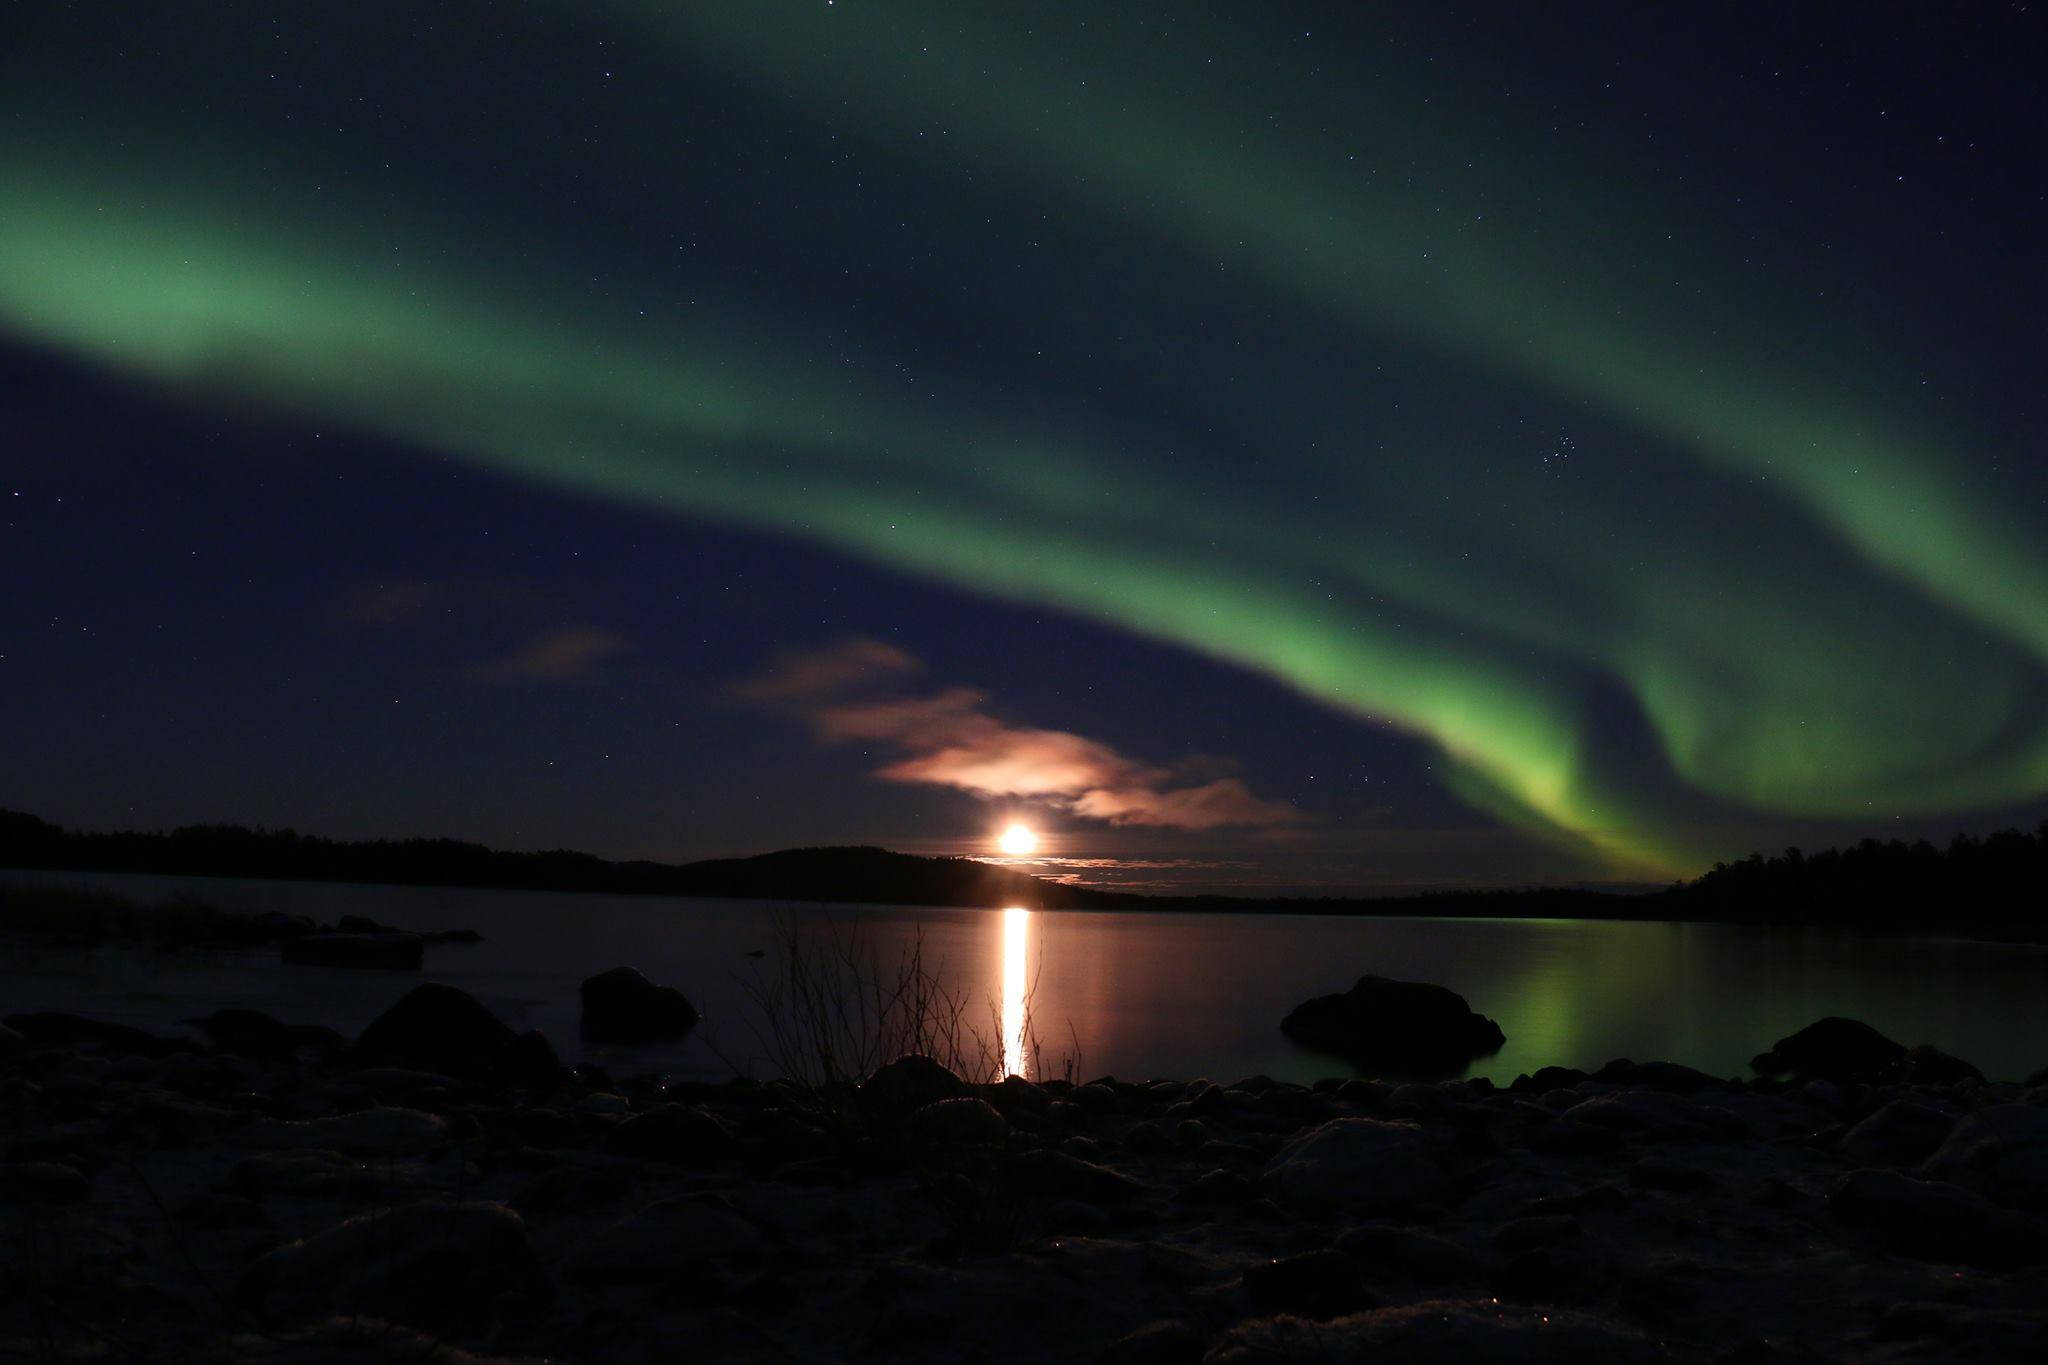 Nordic Lights in the Finnish Lapland